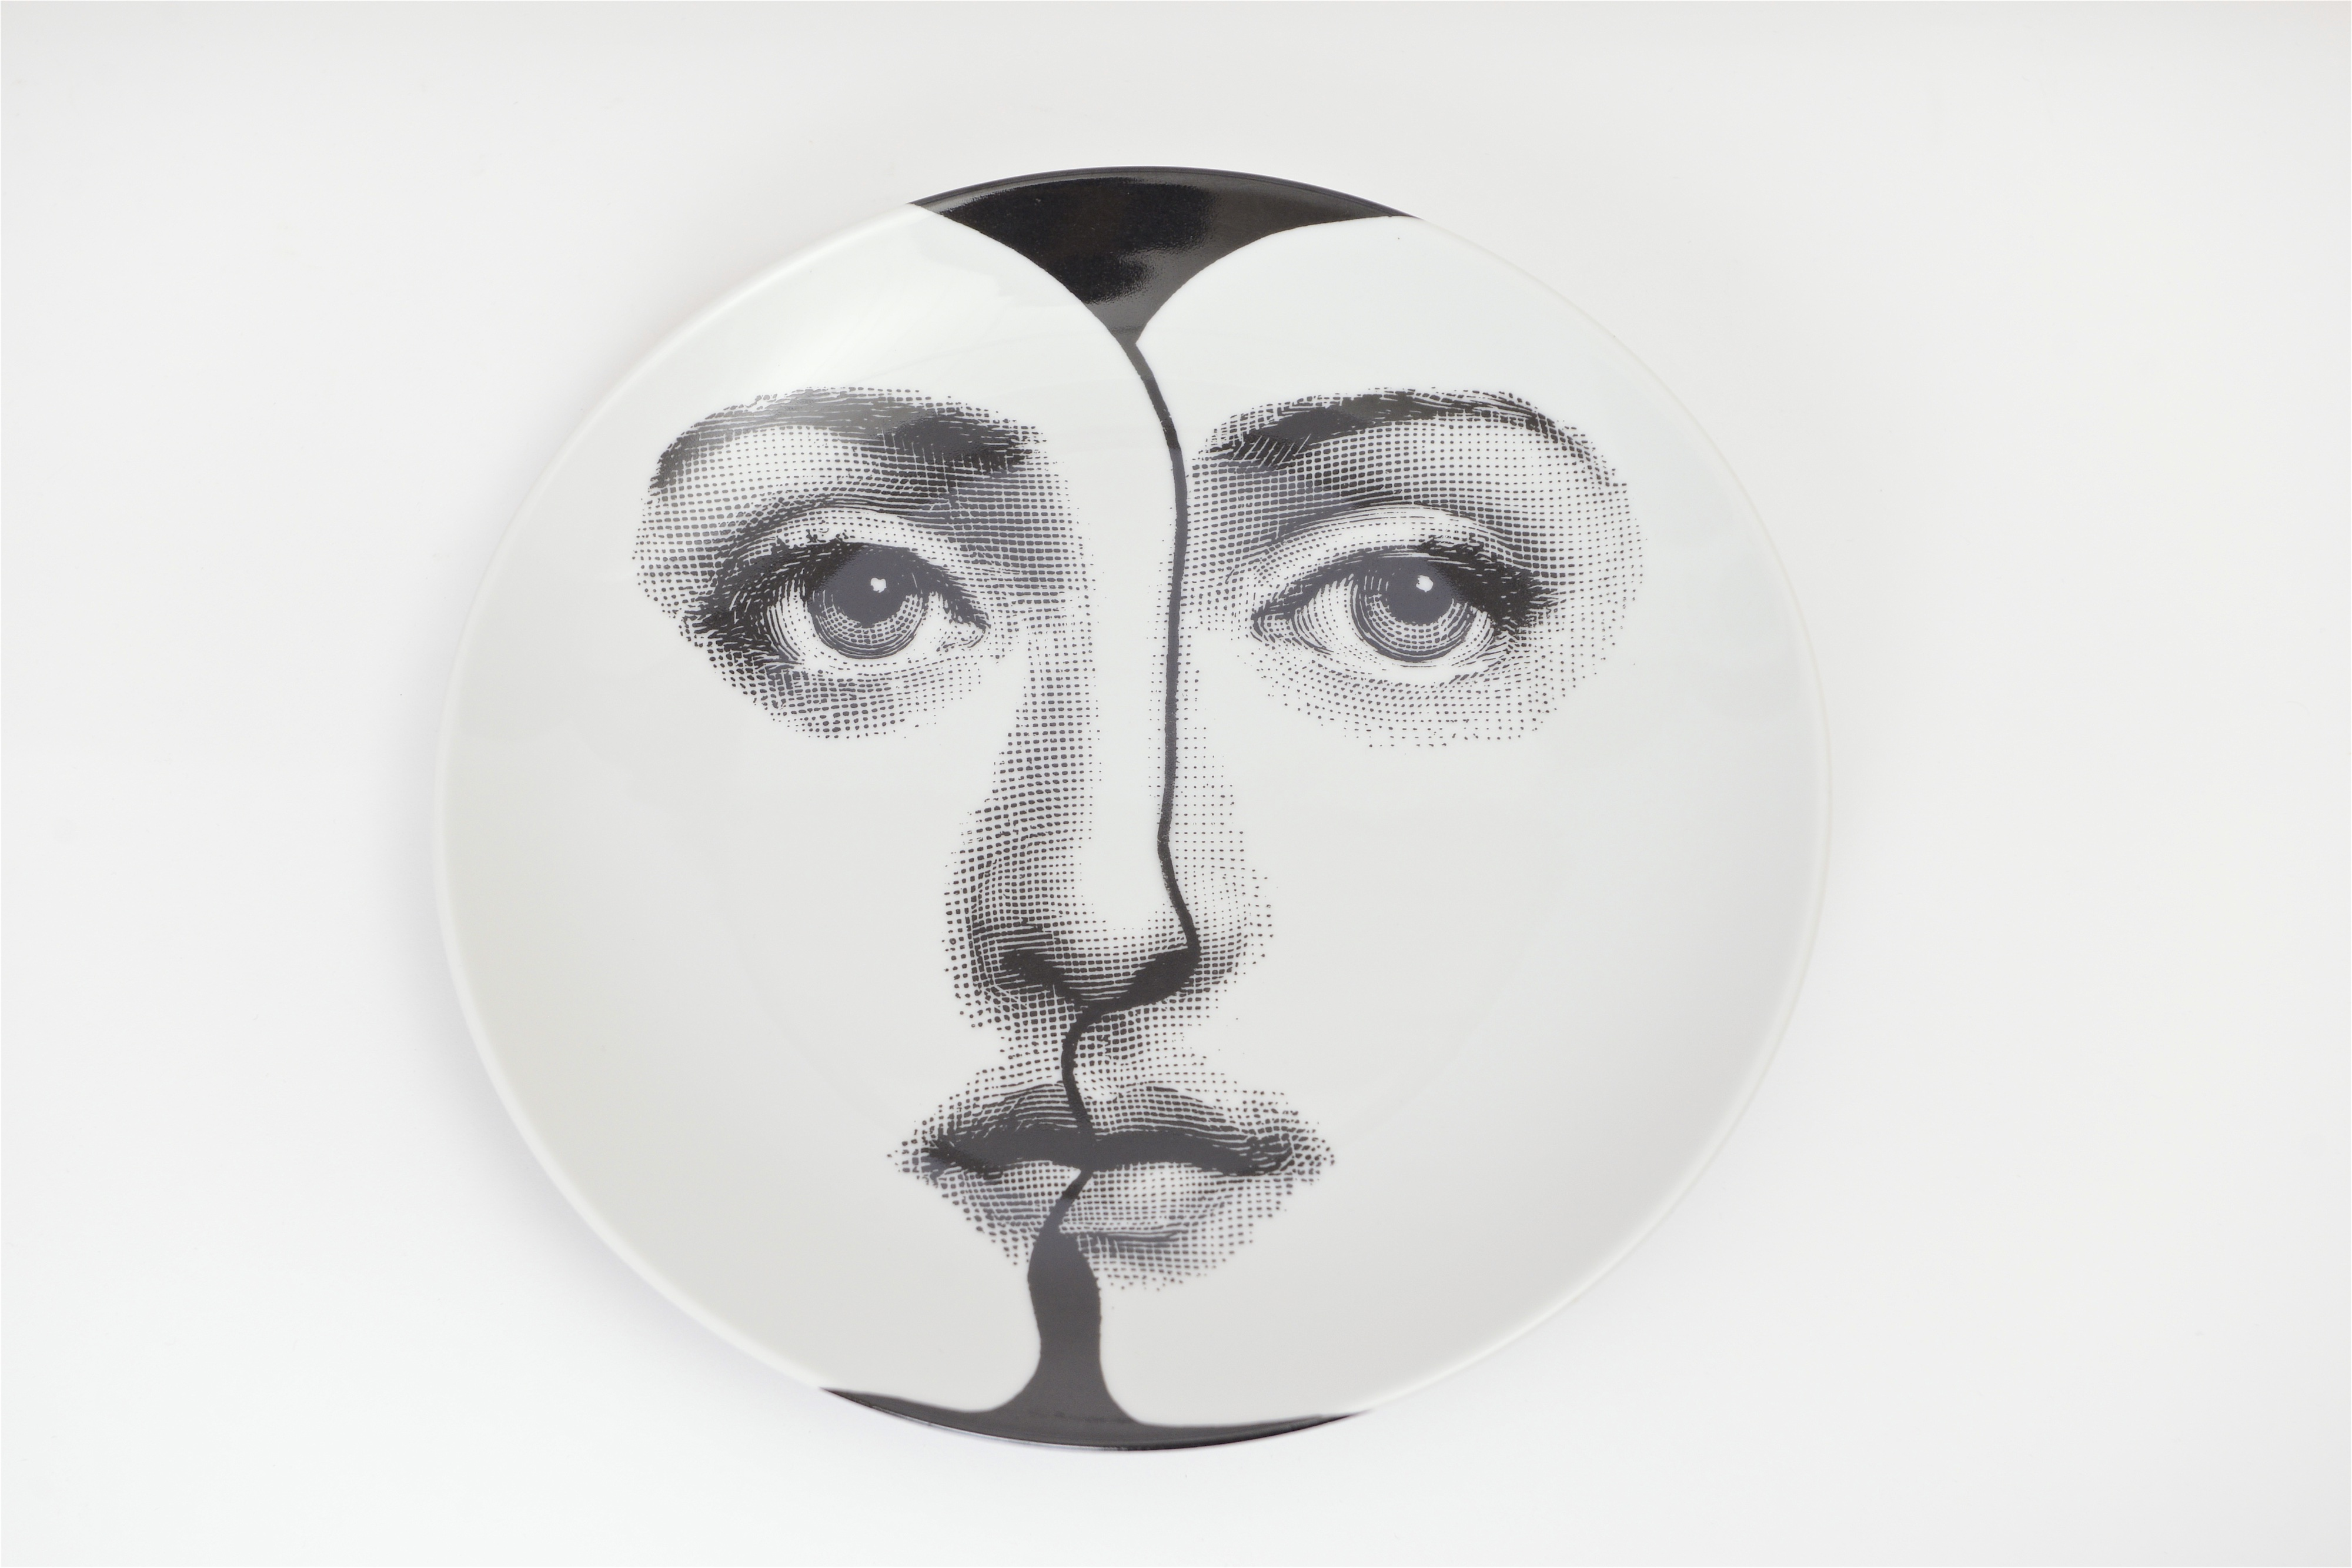 Black and white 'Themes and Variations' plate by Fornasetti